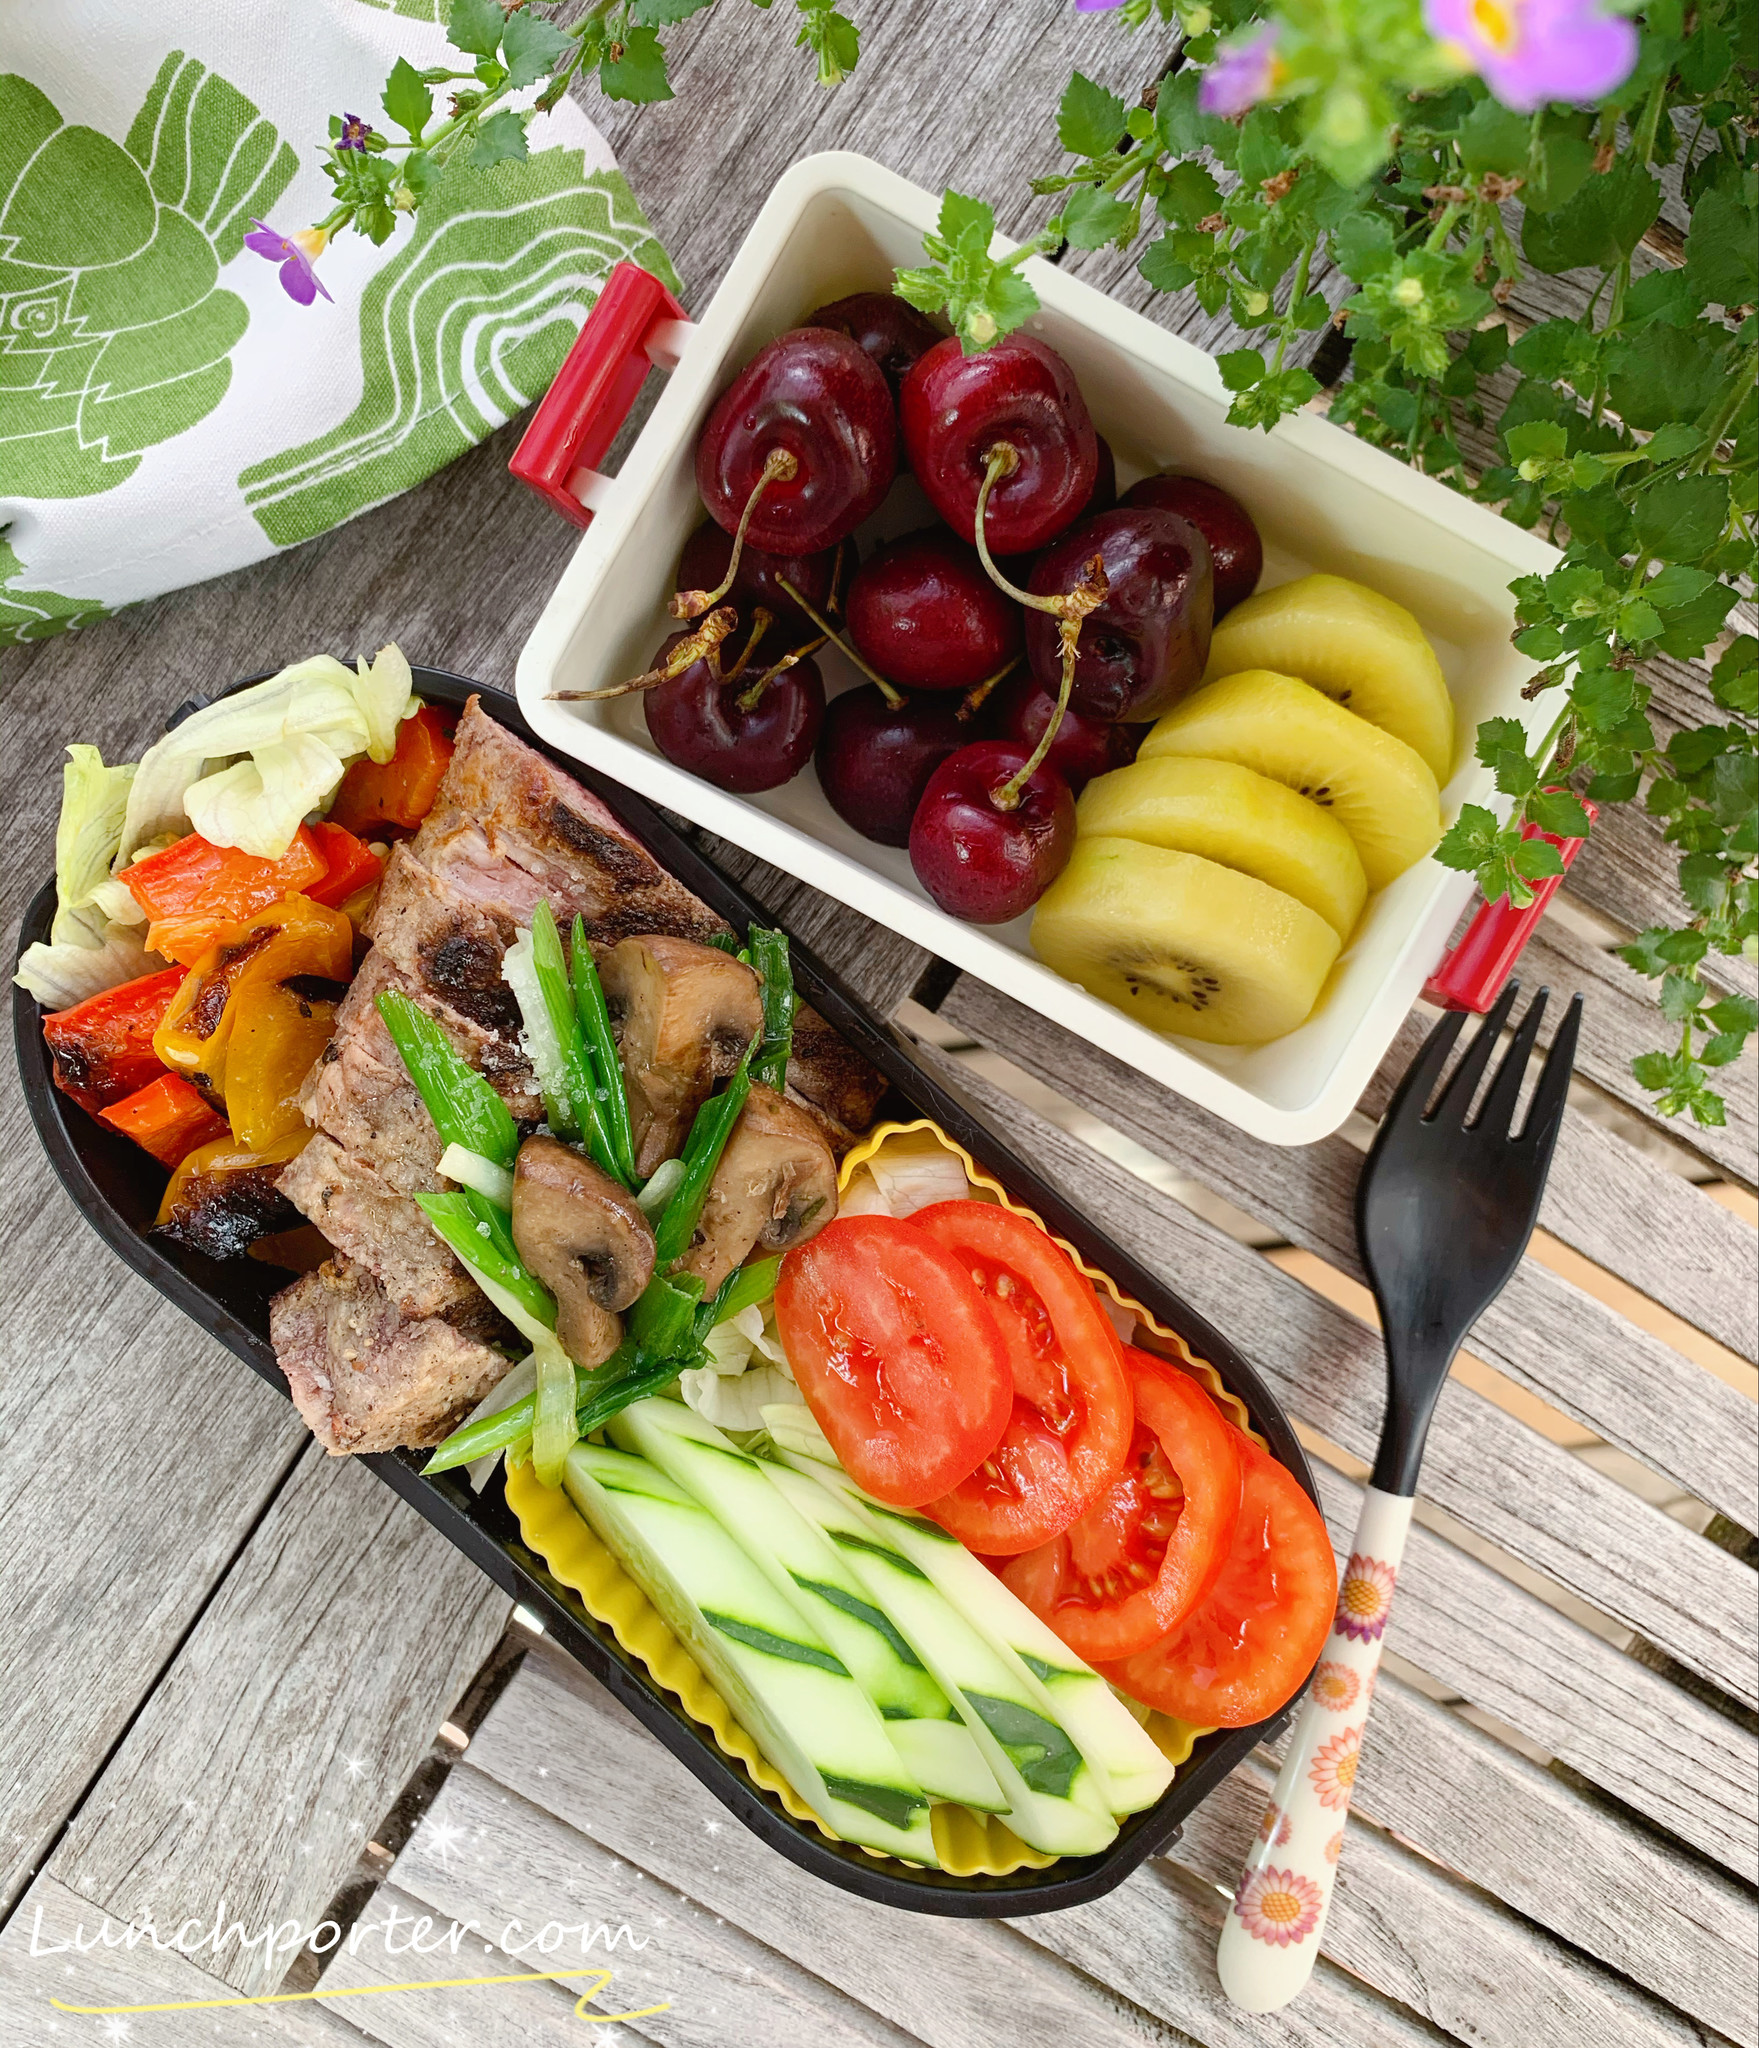 Tips for Quick Lunch Prep Using Dinner Leftovers